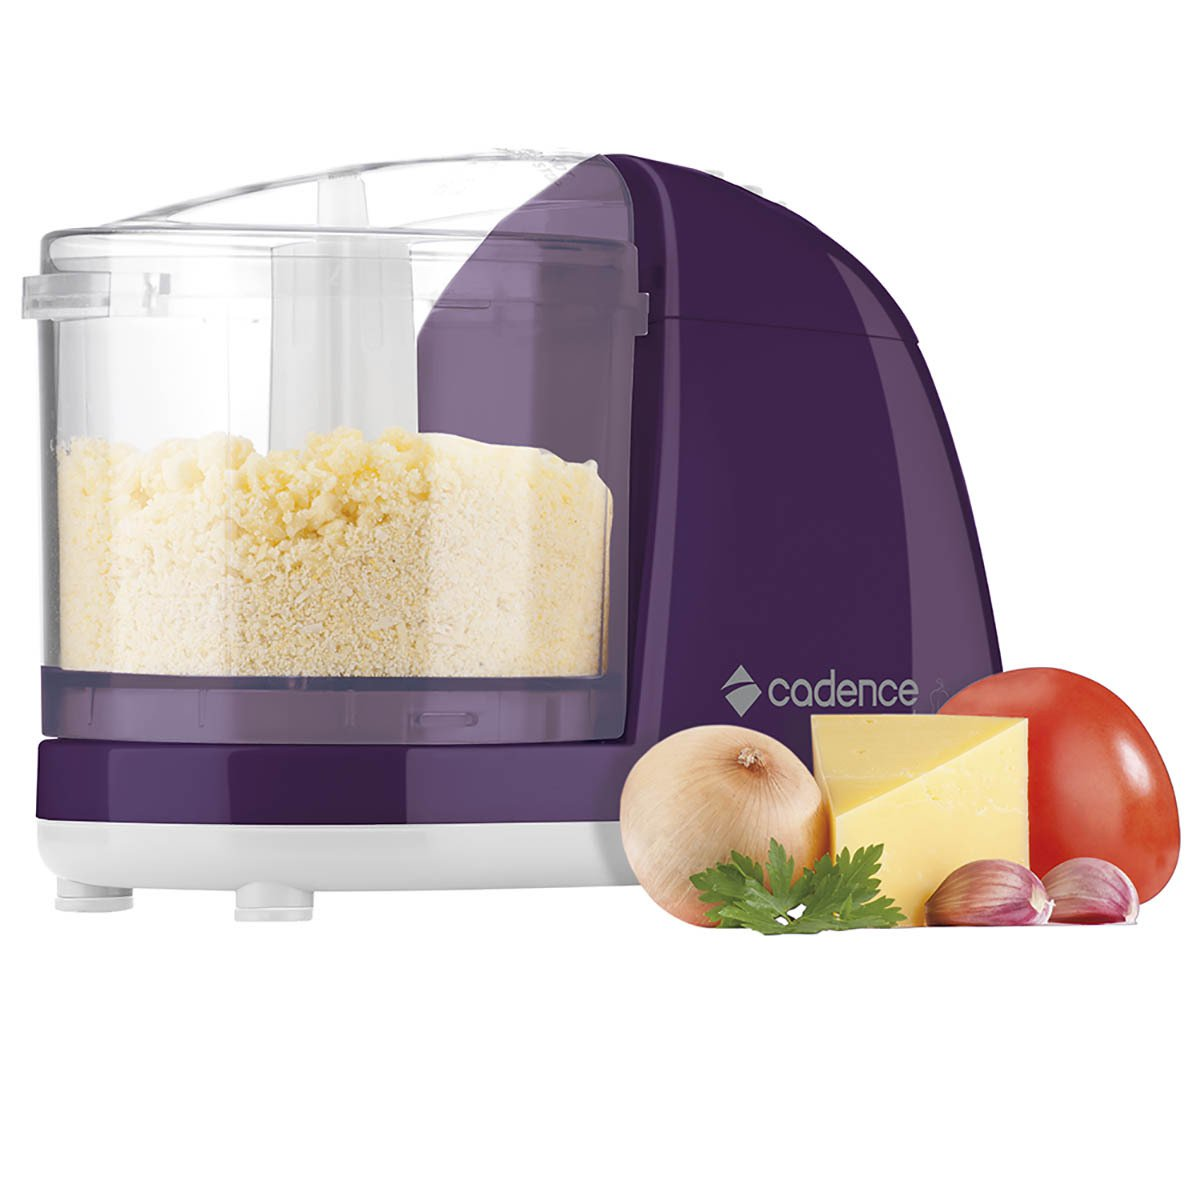 Mini Processador de Alimentos Cadence Easy Cut Colors MPR512 100W Roxo 220V - Mix Eletro